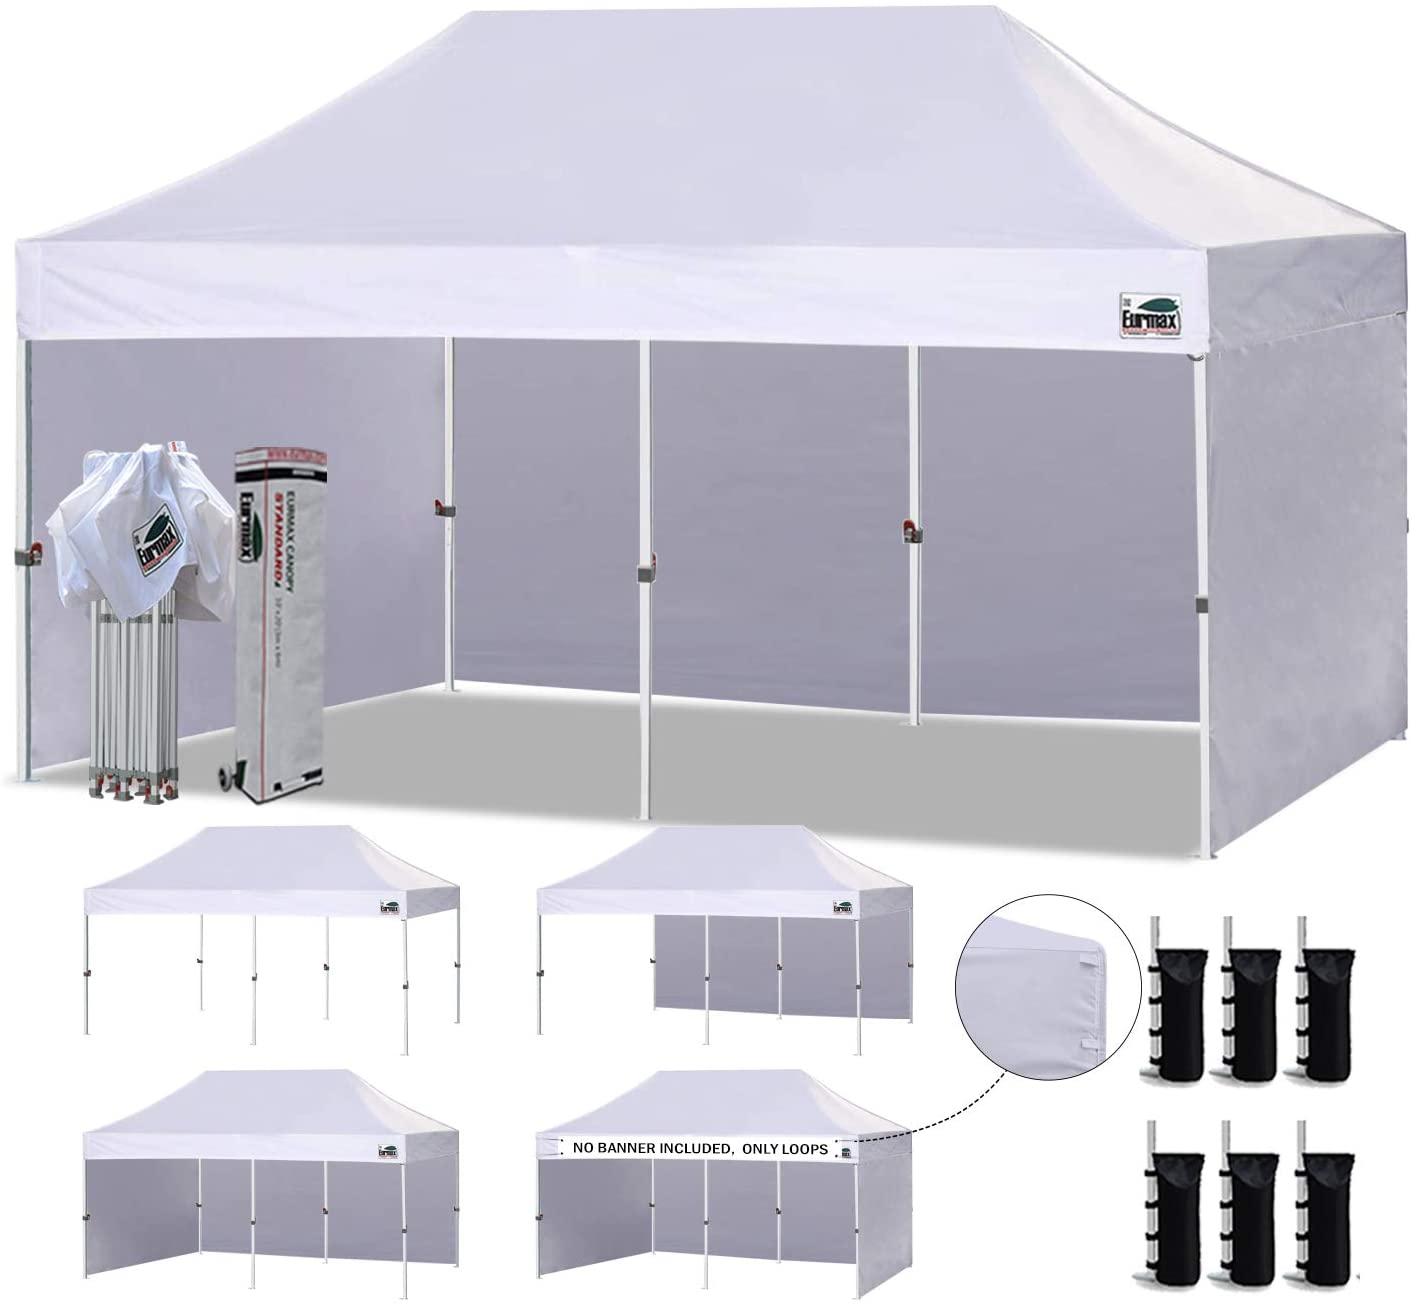 Eurmax 10'x20' Ez Pop up Canopy Tent Commercial Instant Gazebo with 4 Removable Zipper End Side Walls and Roller Bag, Bonus 6 SandBags (White)